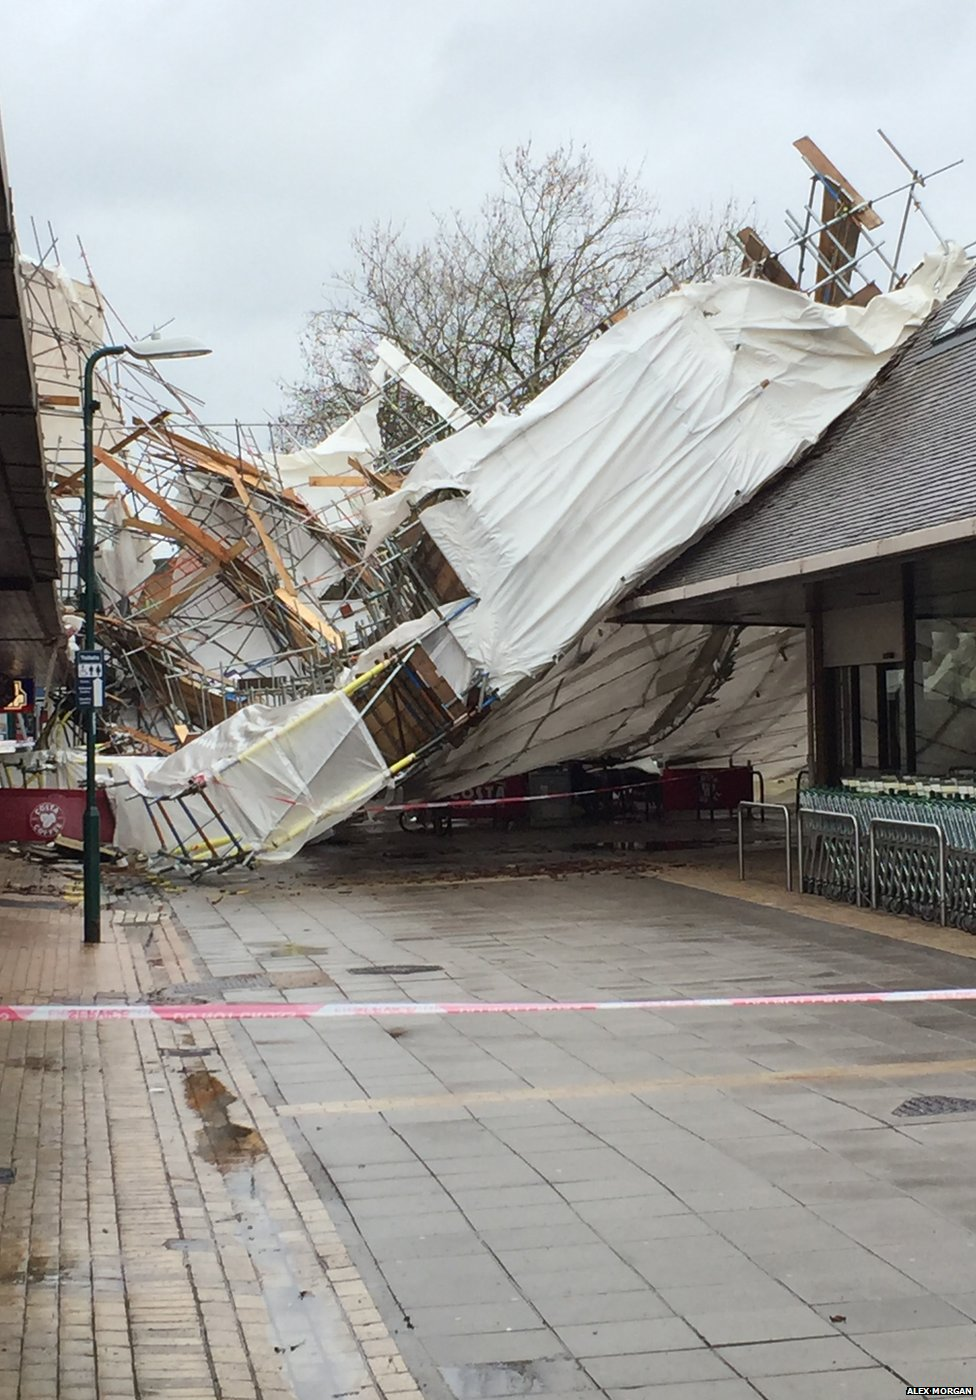 """The main shopping street in Woodley, Reading. Alex Morgan says: """"The scaffolding from the building on the left has been ripped off and now covers the high street"""". Credit: Alex Morgan"""